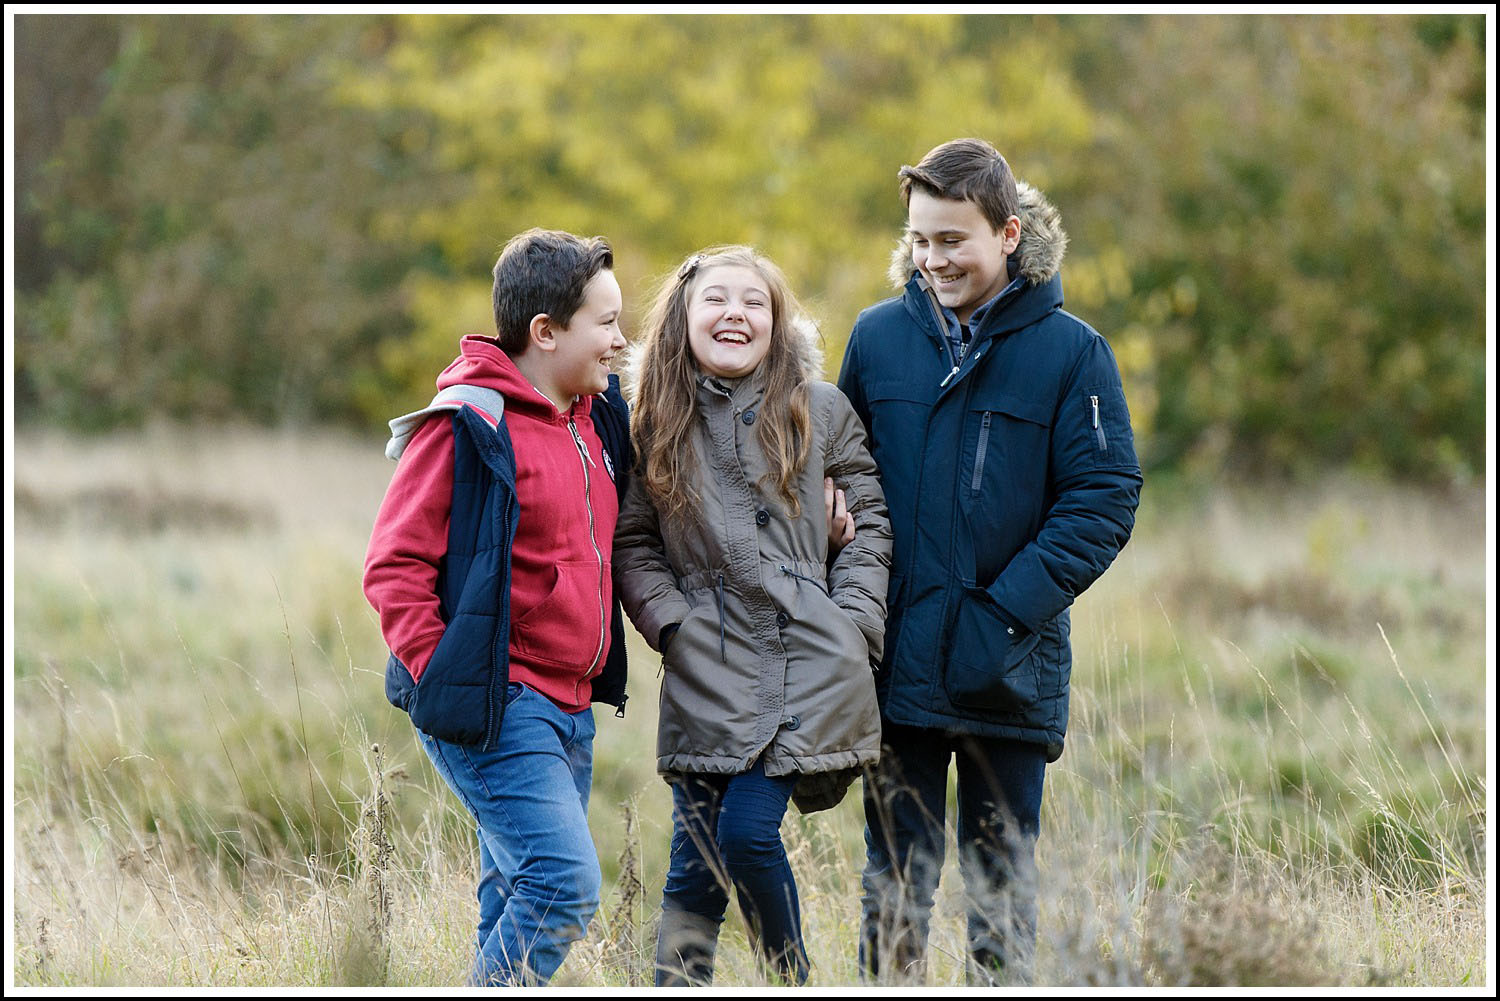 family photographer portrait doncaster yorkshire.jpg